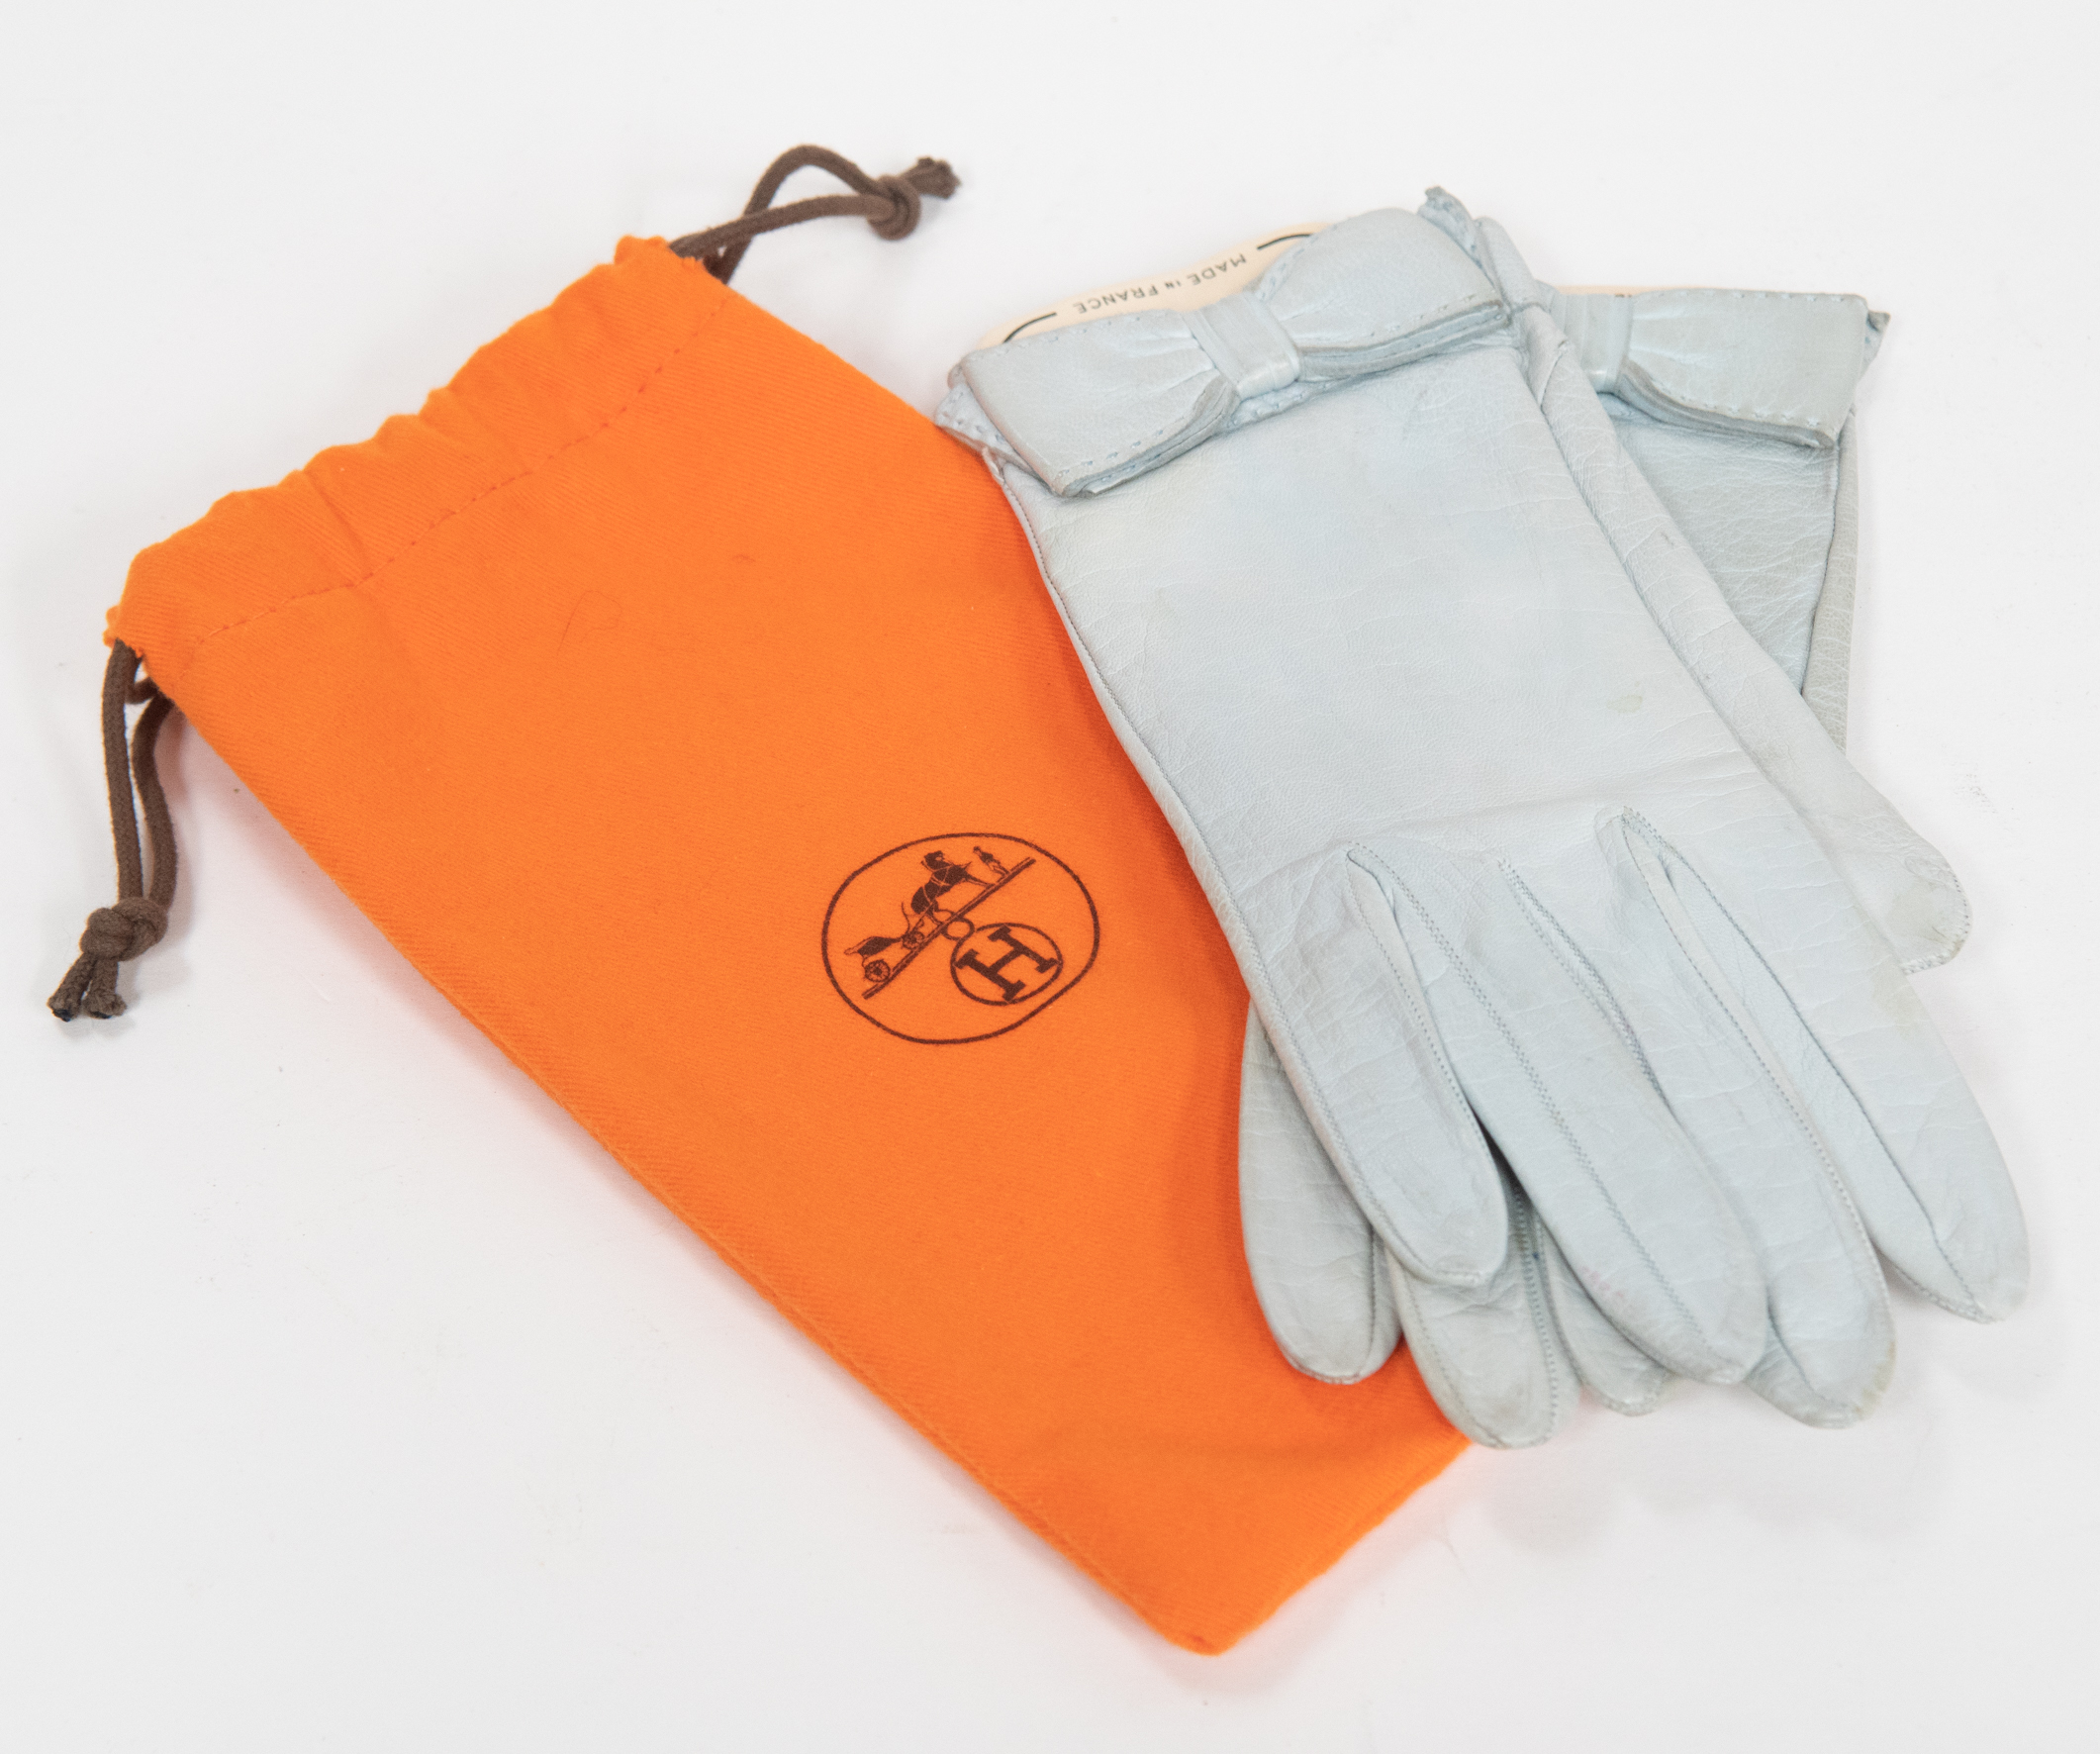 863bac3b0629 Lot 1301 - HERMES a pair of Hermes vintage leather gloves, pale blue soft  leather